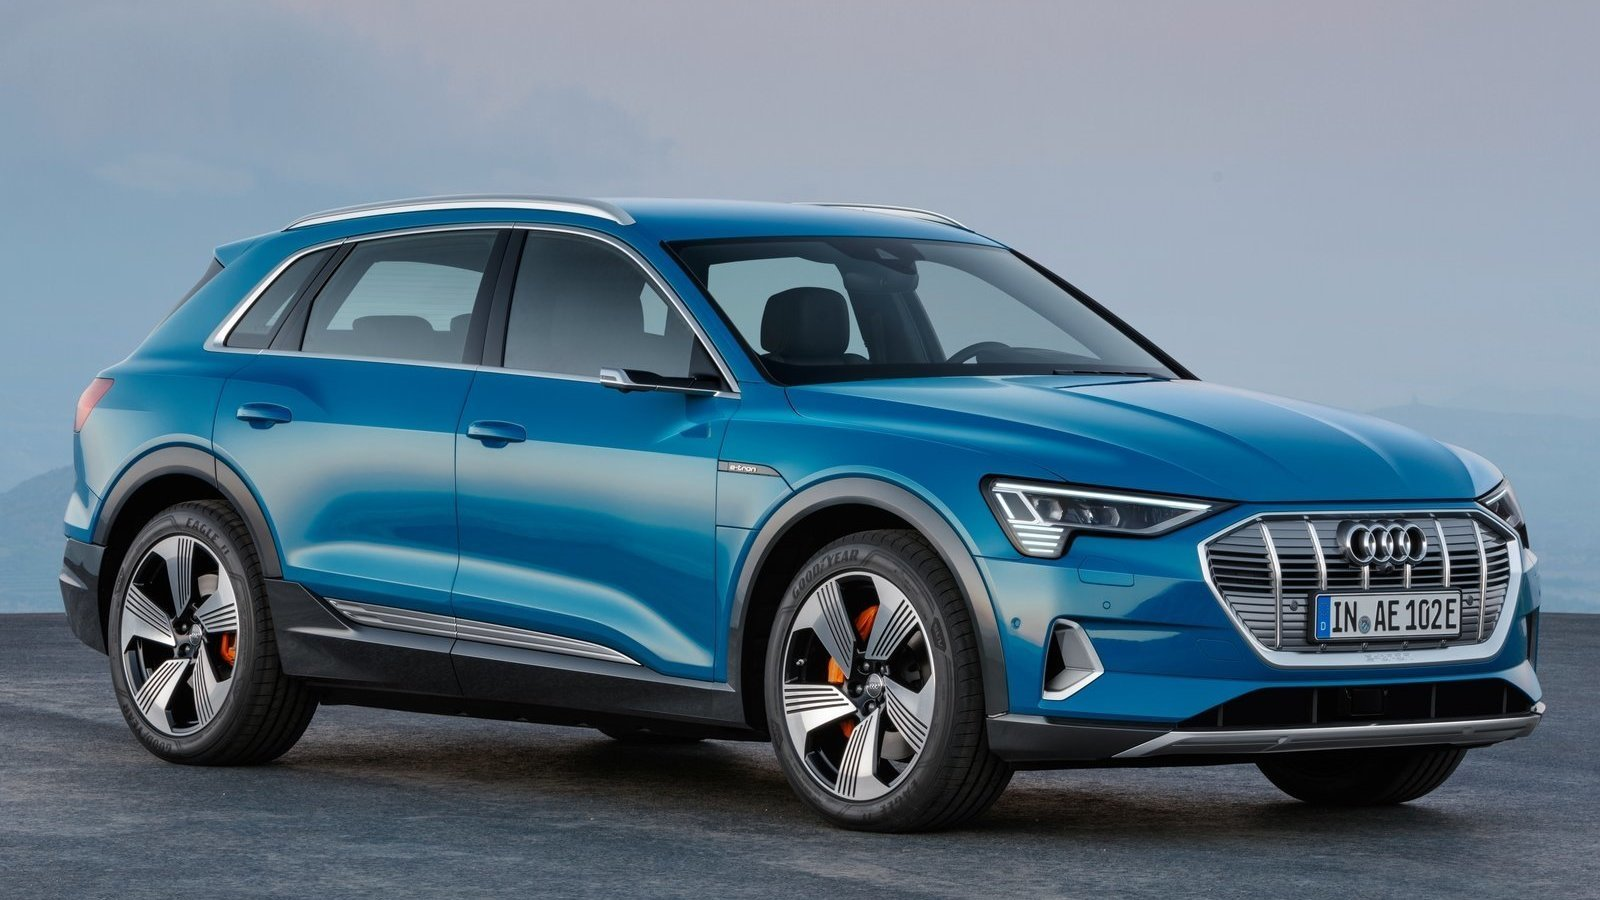 Audi's Tesla Model X killer is here – An all-electric SUV with a range of 200 miles